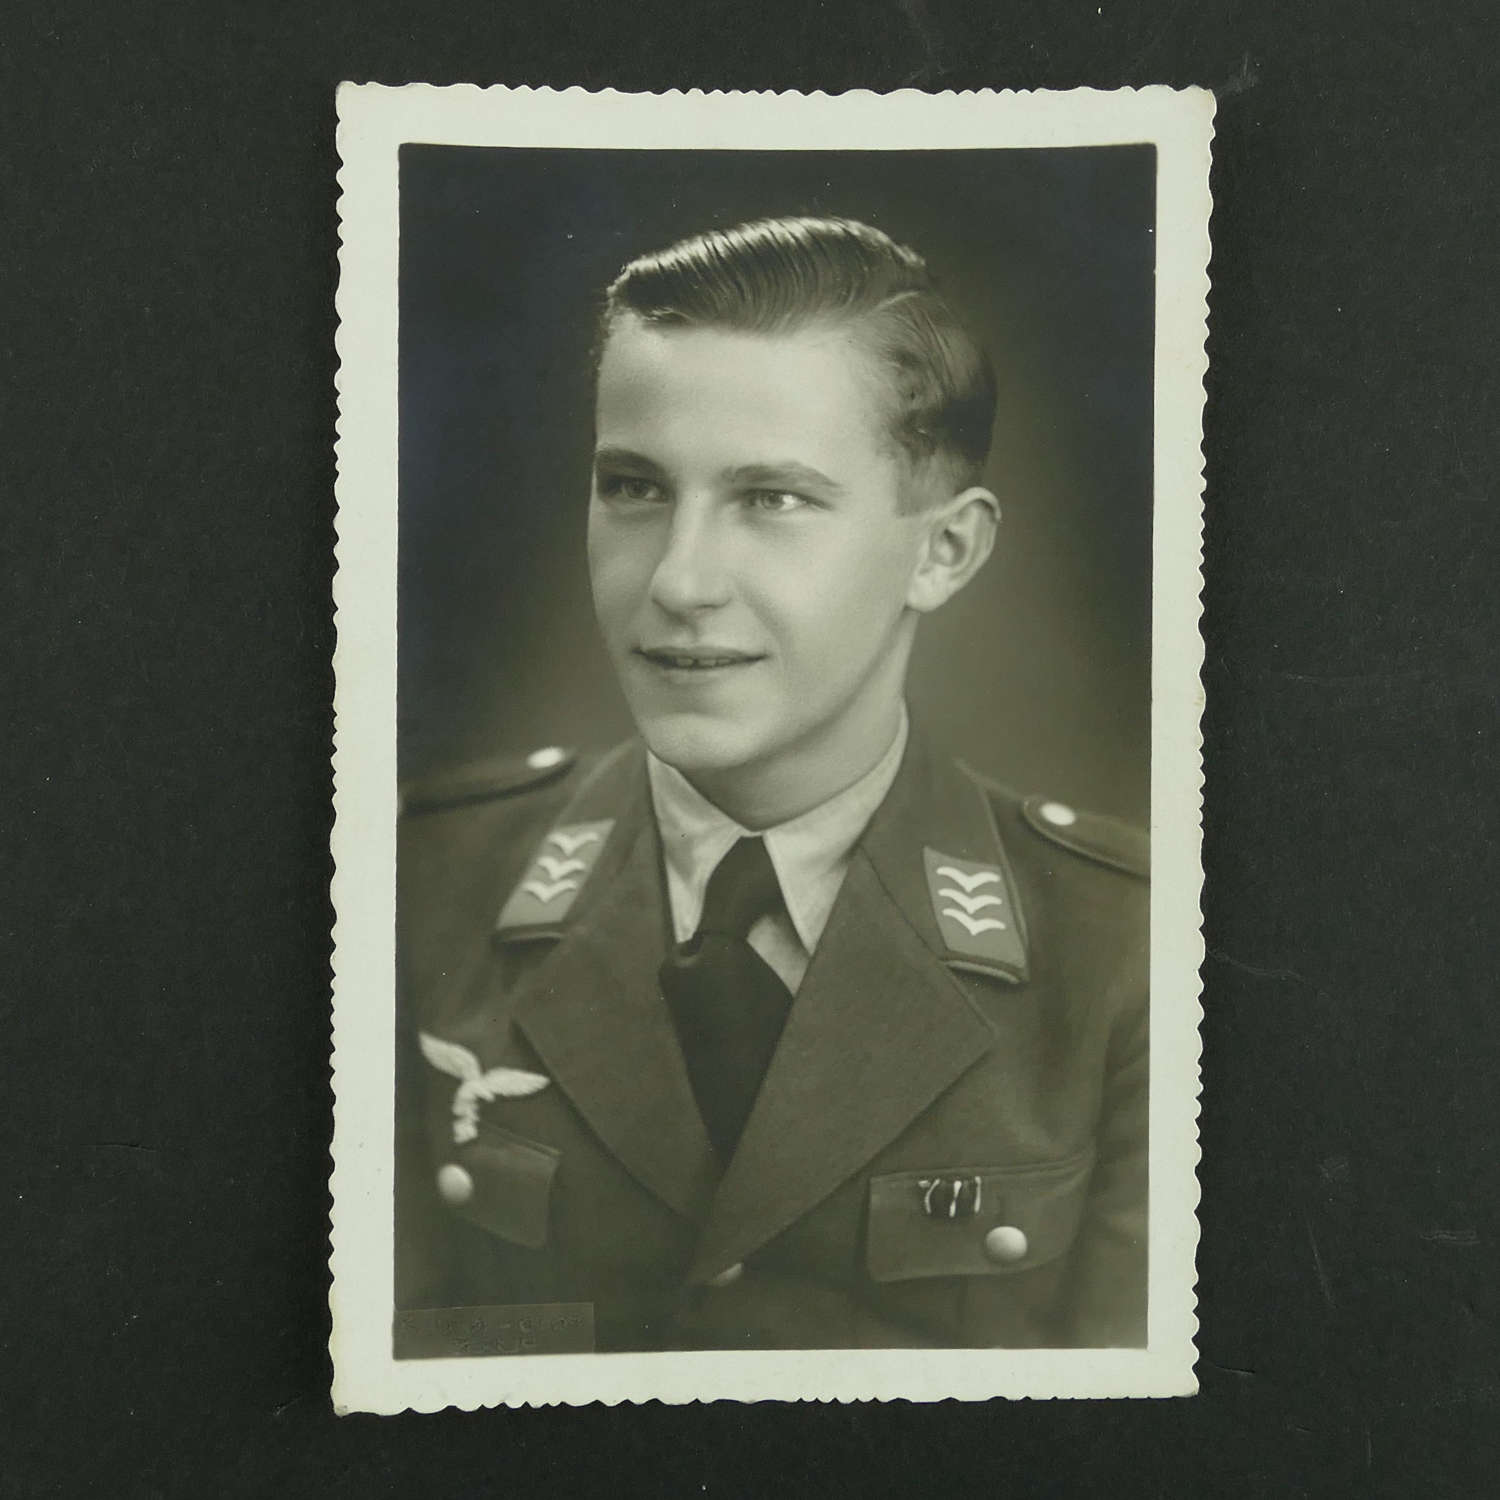 Photo - Luftwaffe officer